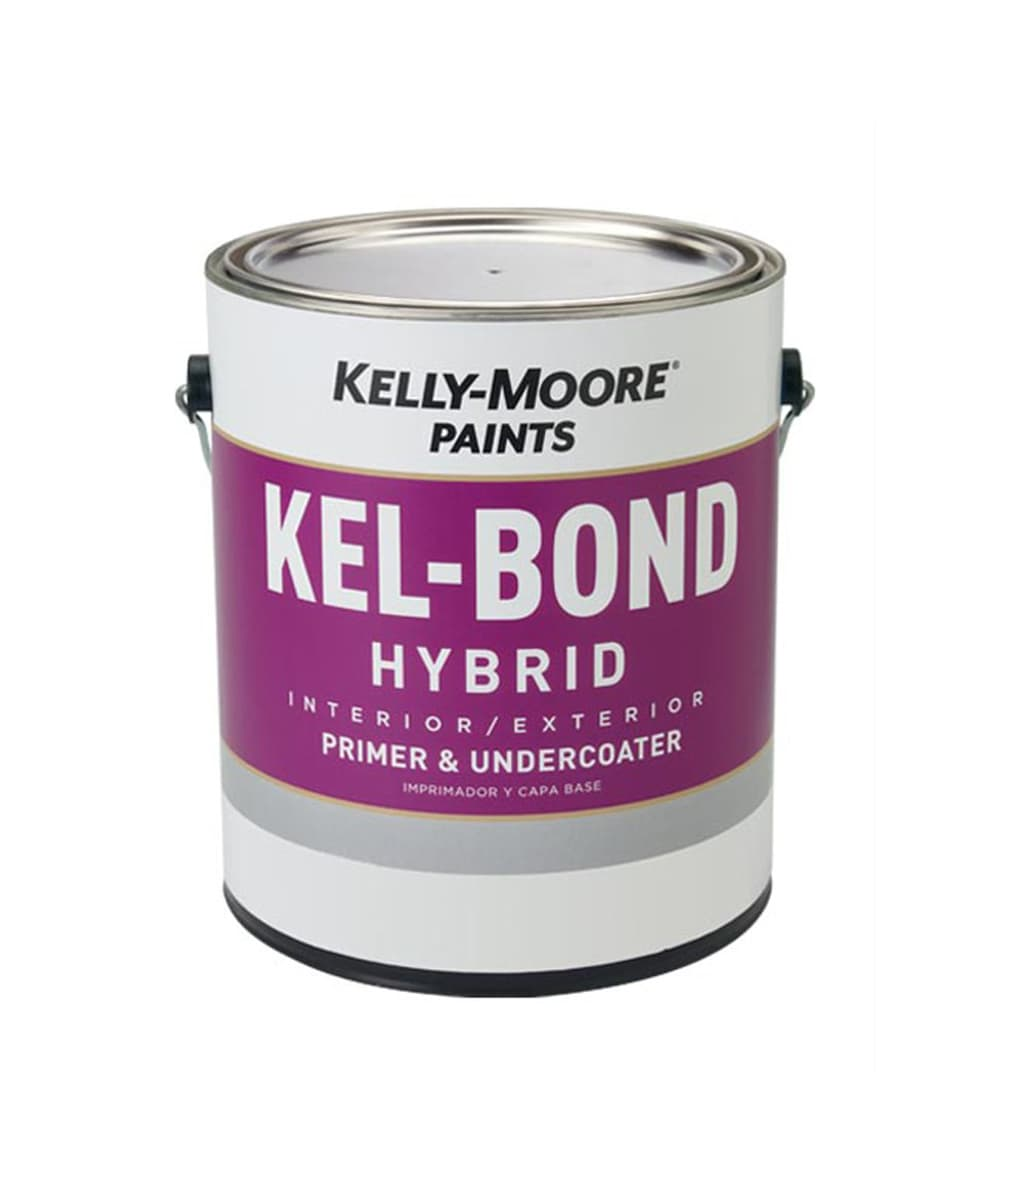 Kel-Bond Hybrid Primer, available at Kelly-Moore Paints for Contractors.